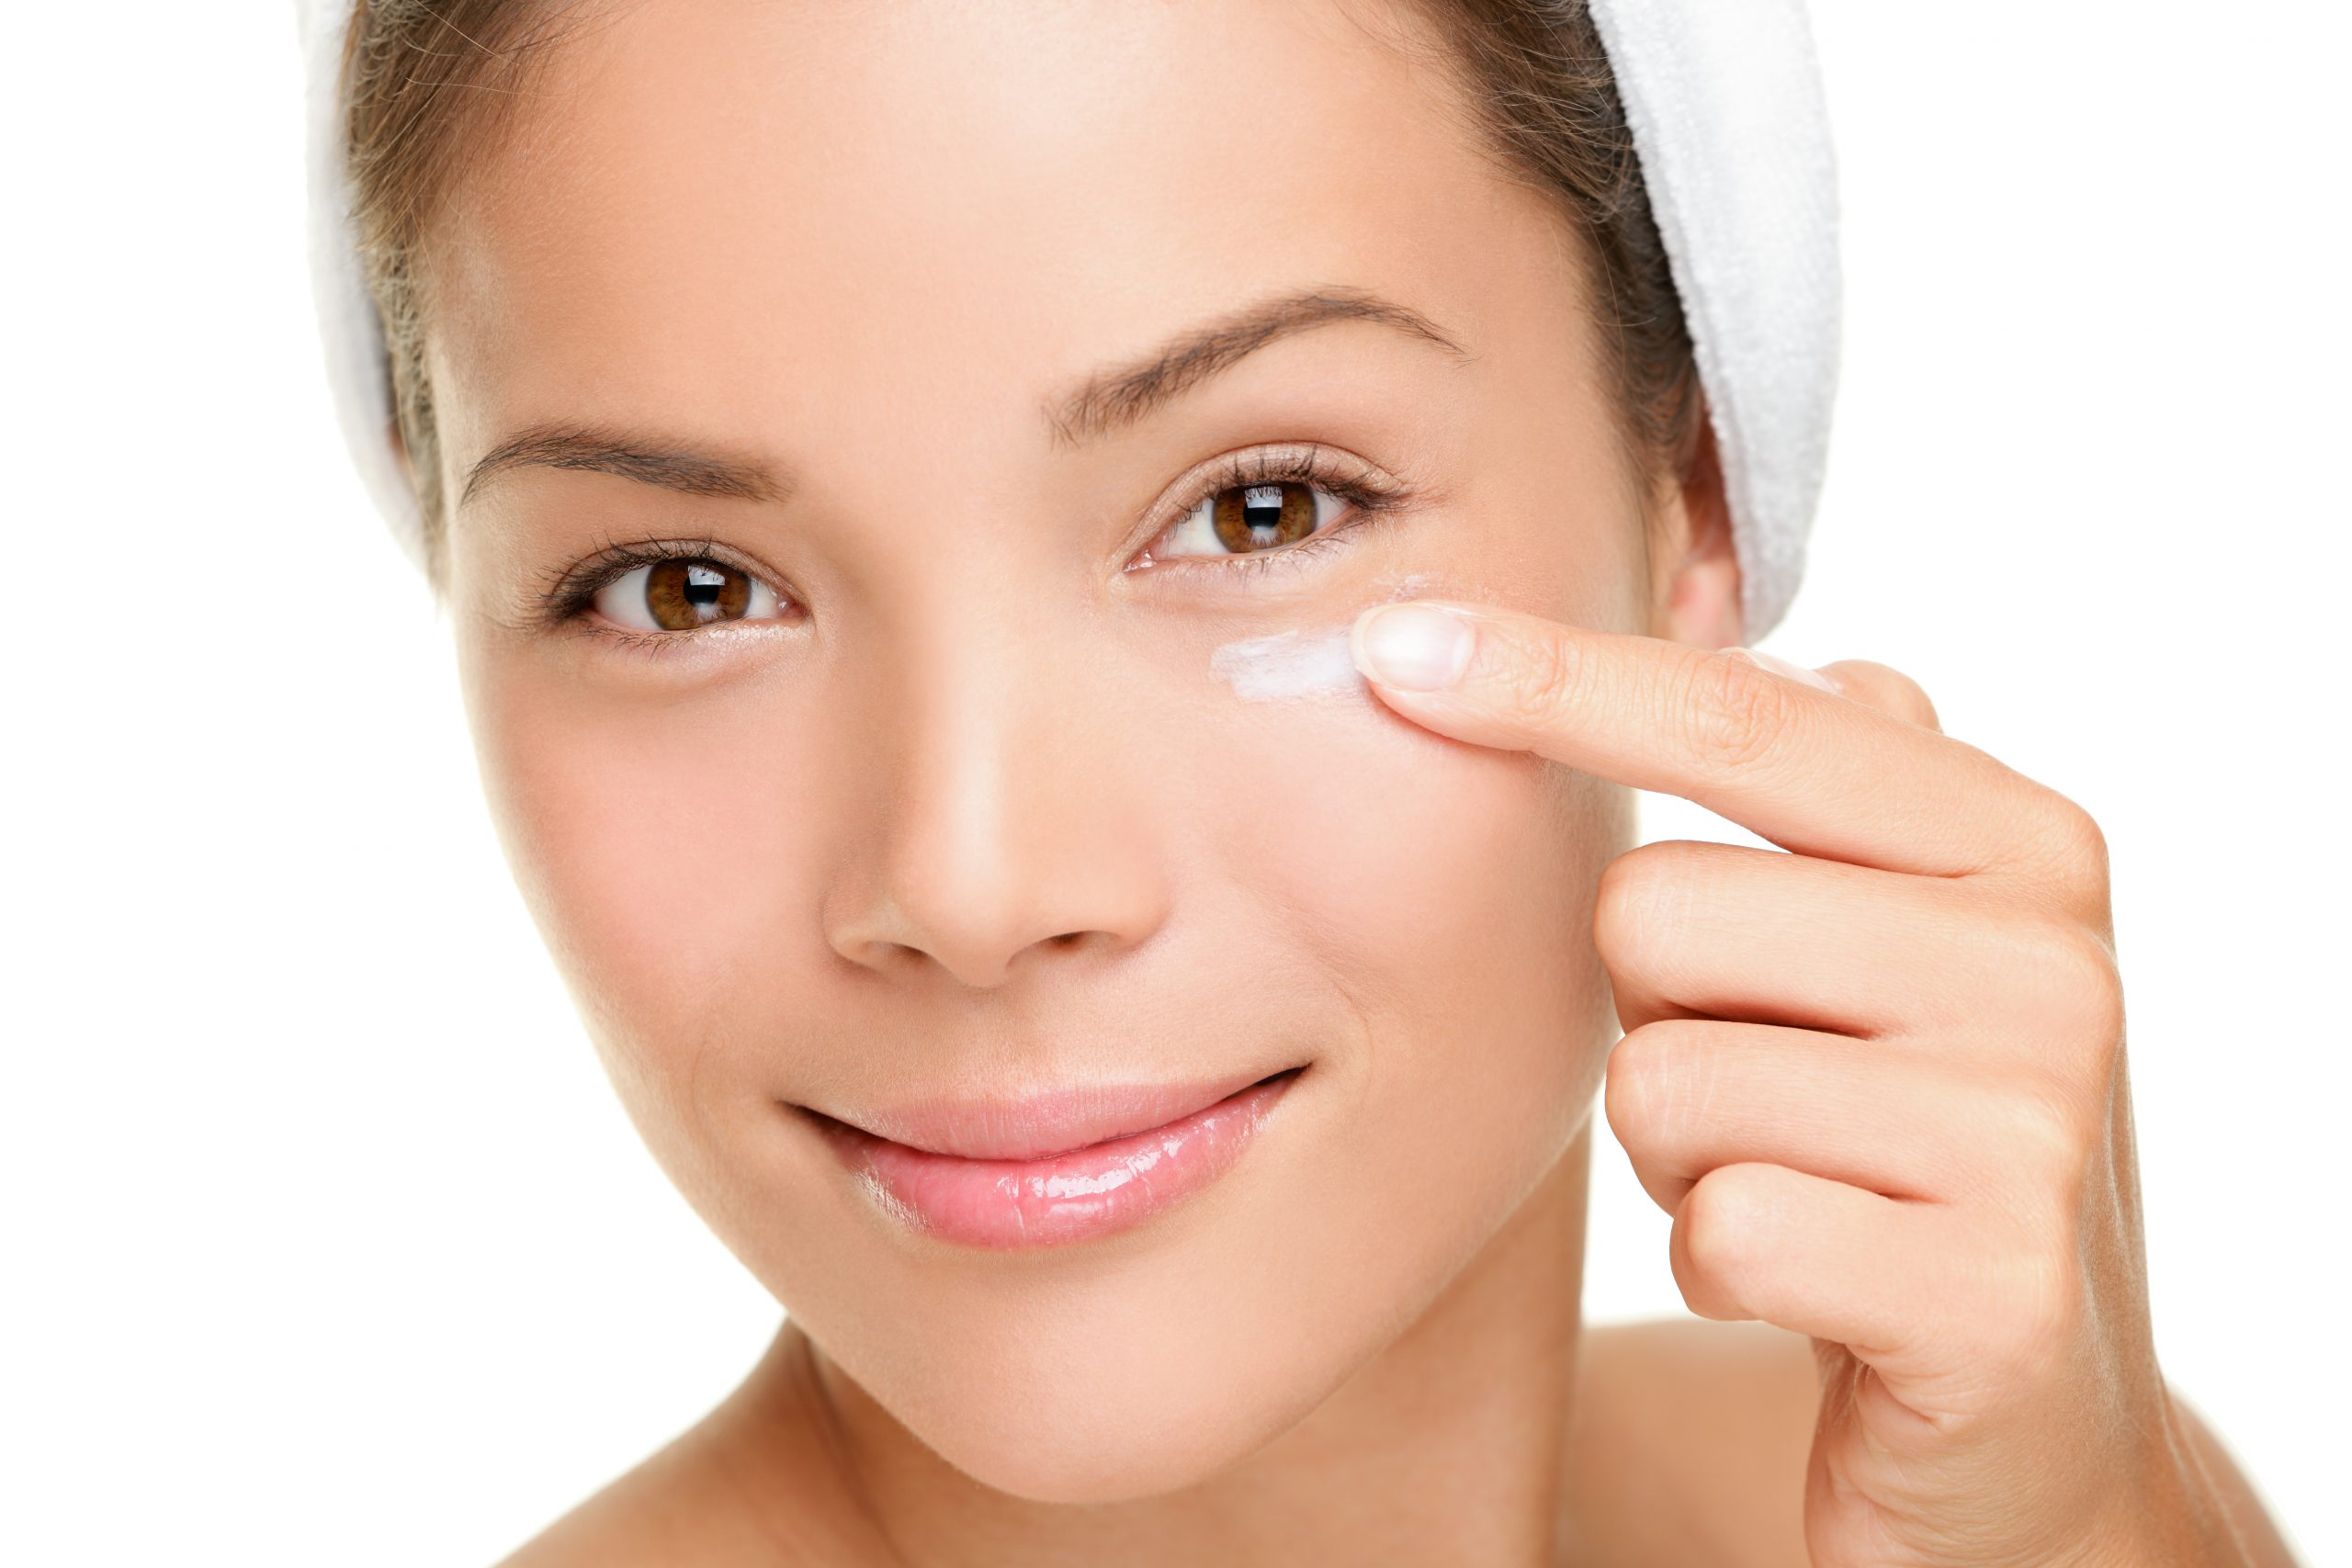 How to Restore Skin Elasticity After Weight Loss